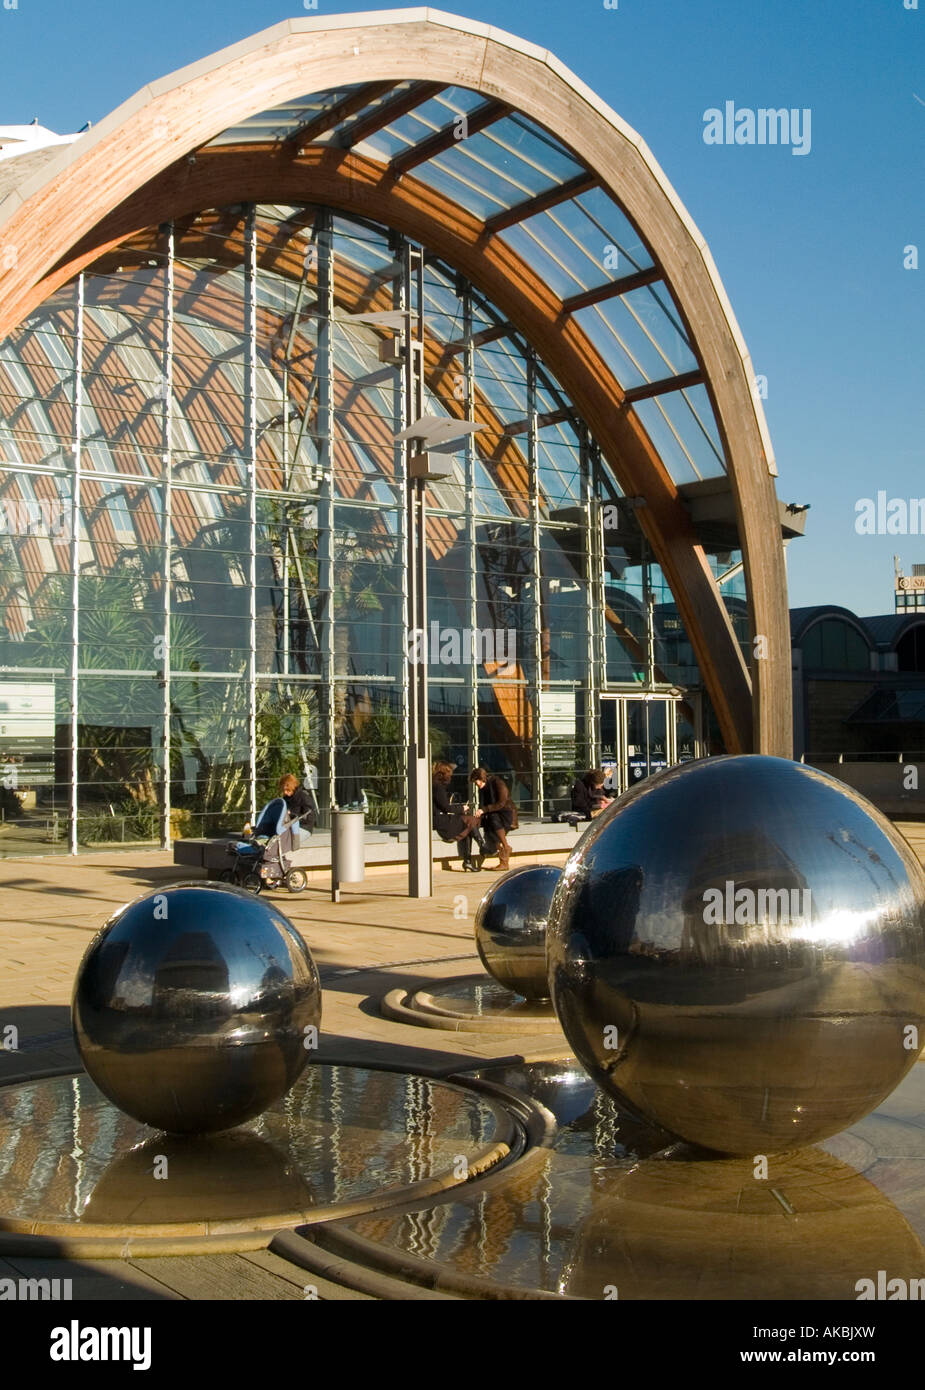 The Winter Garden And Spheres That Make Up Part Of The Sculpture